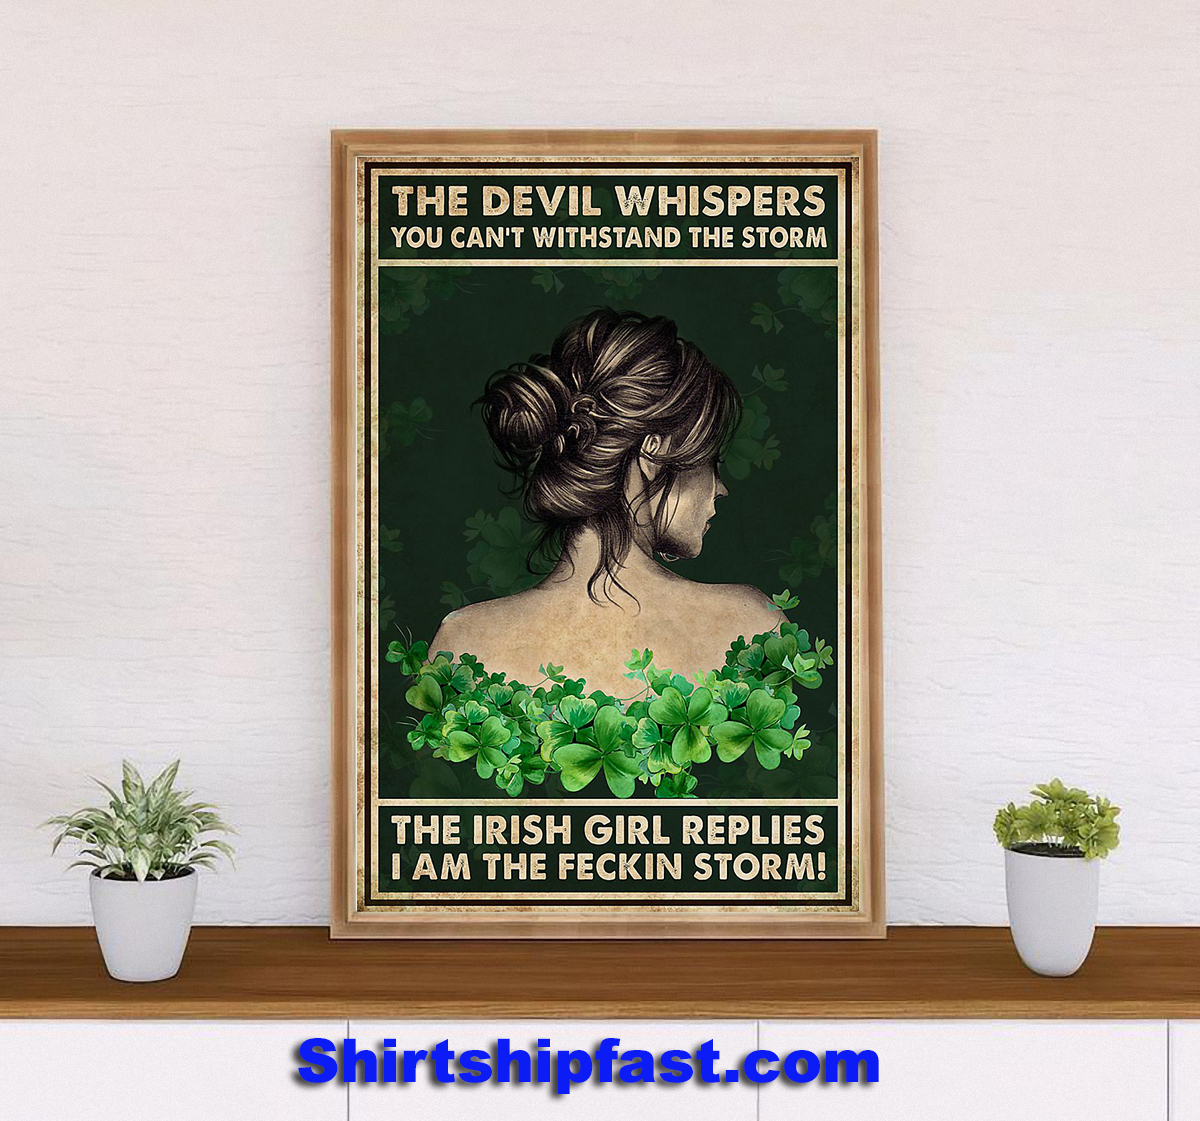 Irish girl The devil whispers you can't withstand the storm poster - Picture 2